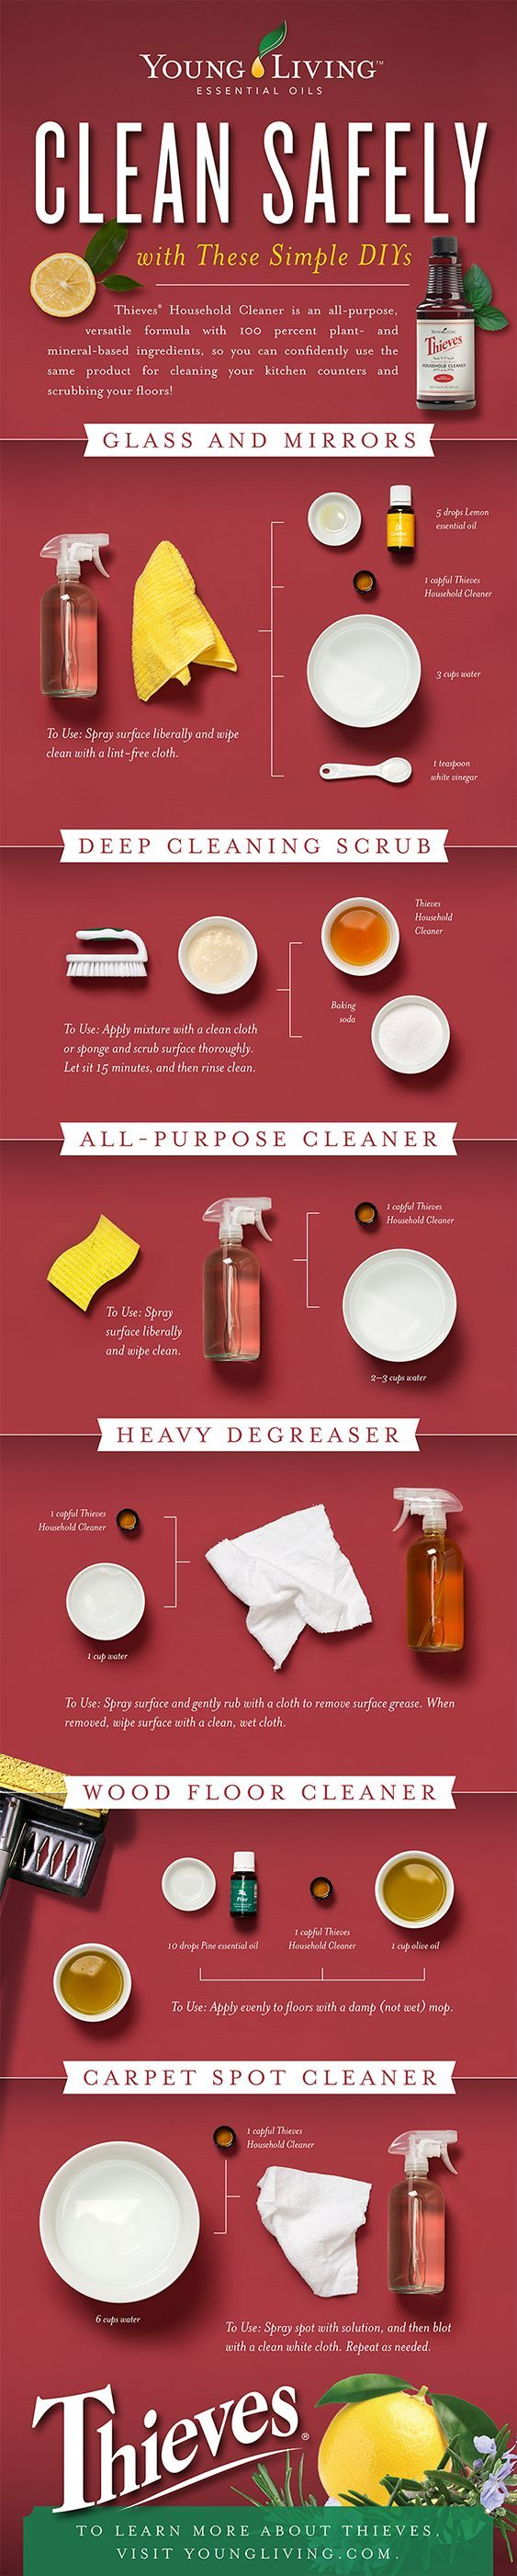 We can clean our whole house with just a handful of essential oils, baking Soda  and Thieves Household Cleaner